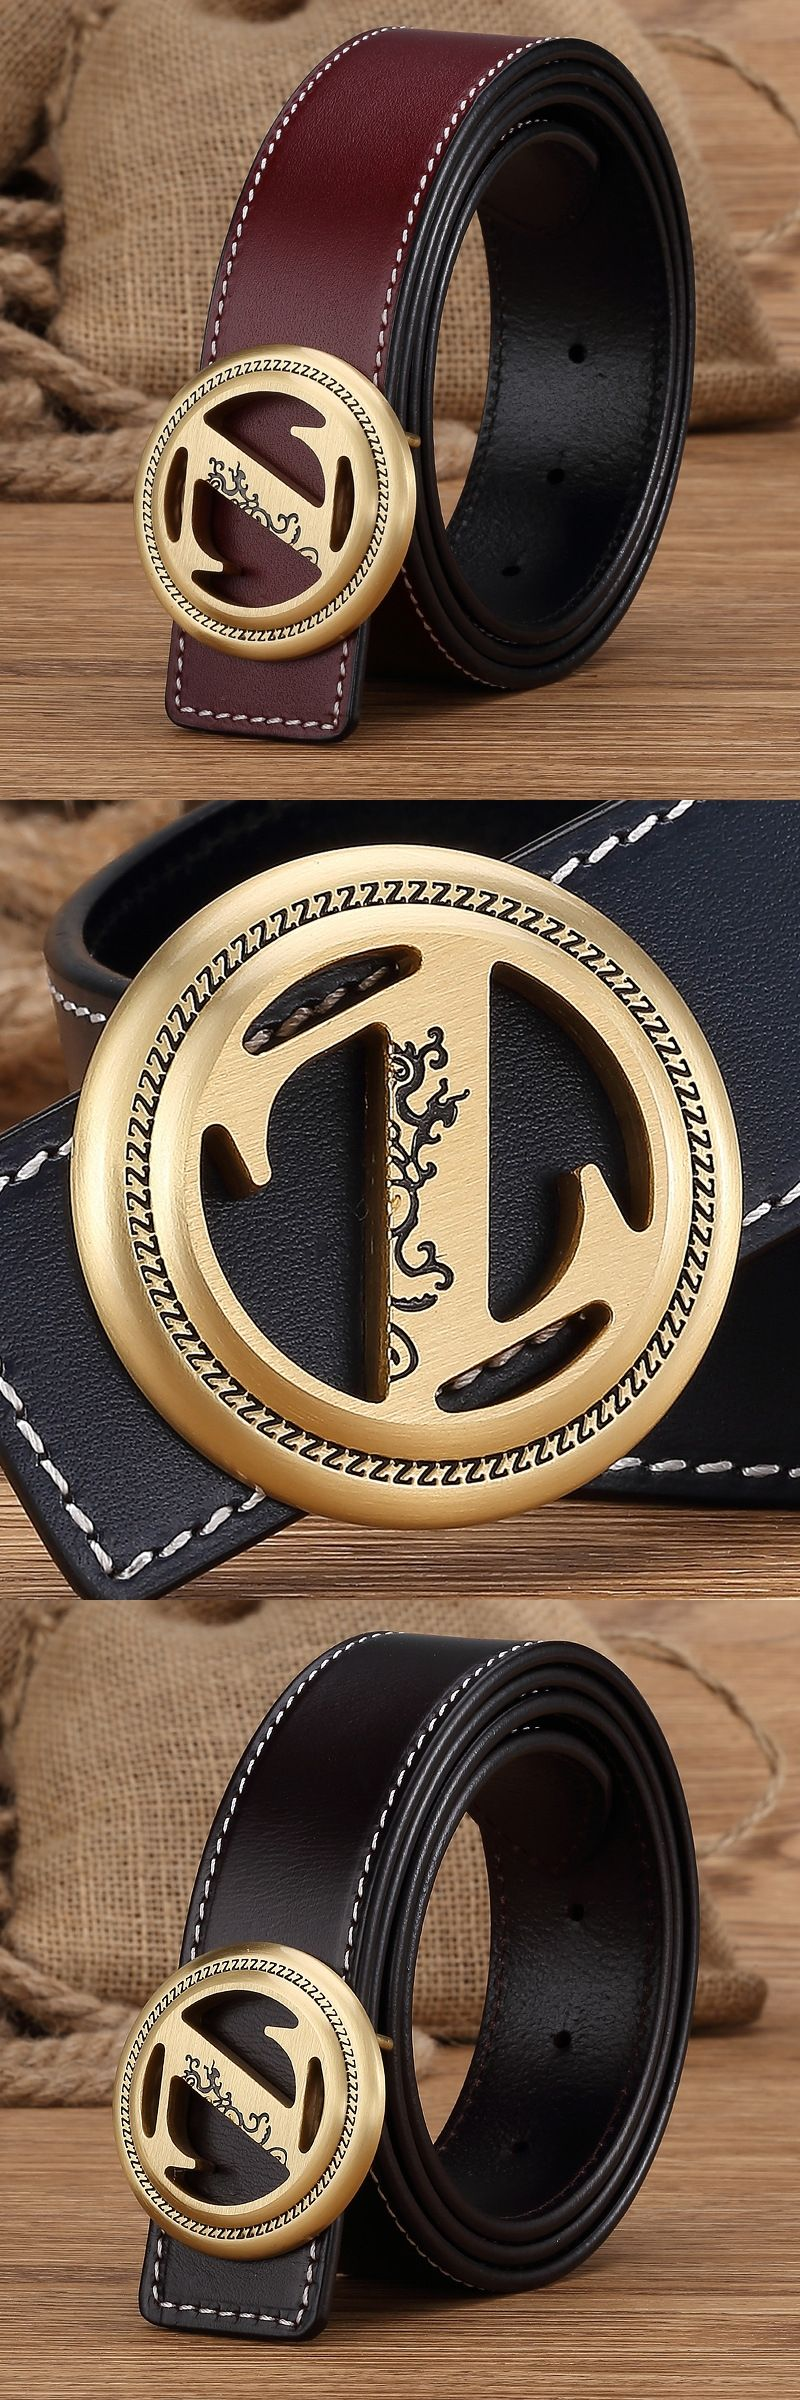 Designer Belts Solid Brass Letter Z Belt Buckle Genuine Leather Men Wide Belt  Ceinture Homme Luxury 819aff6314b